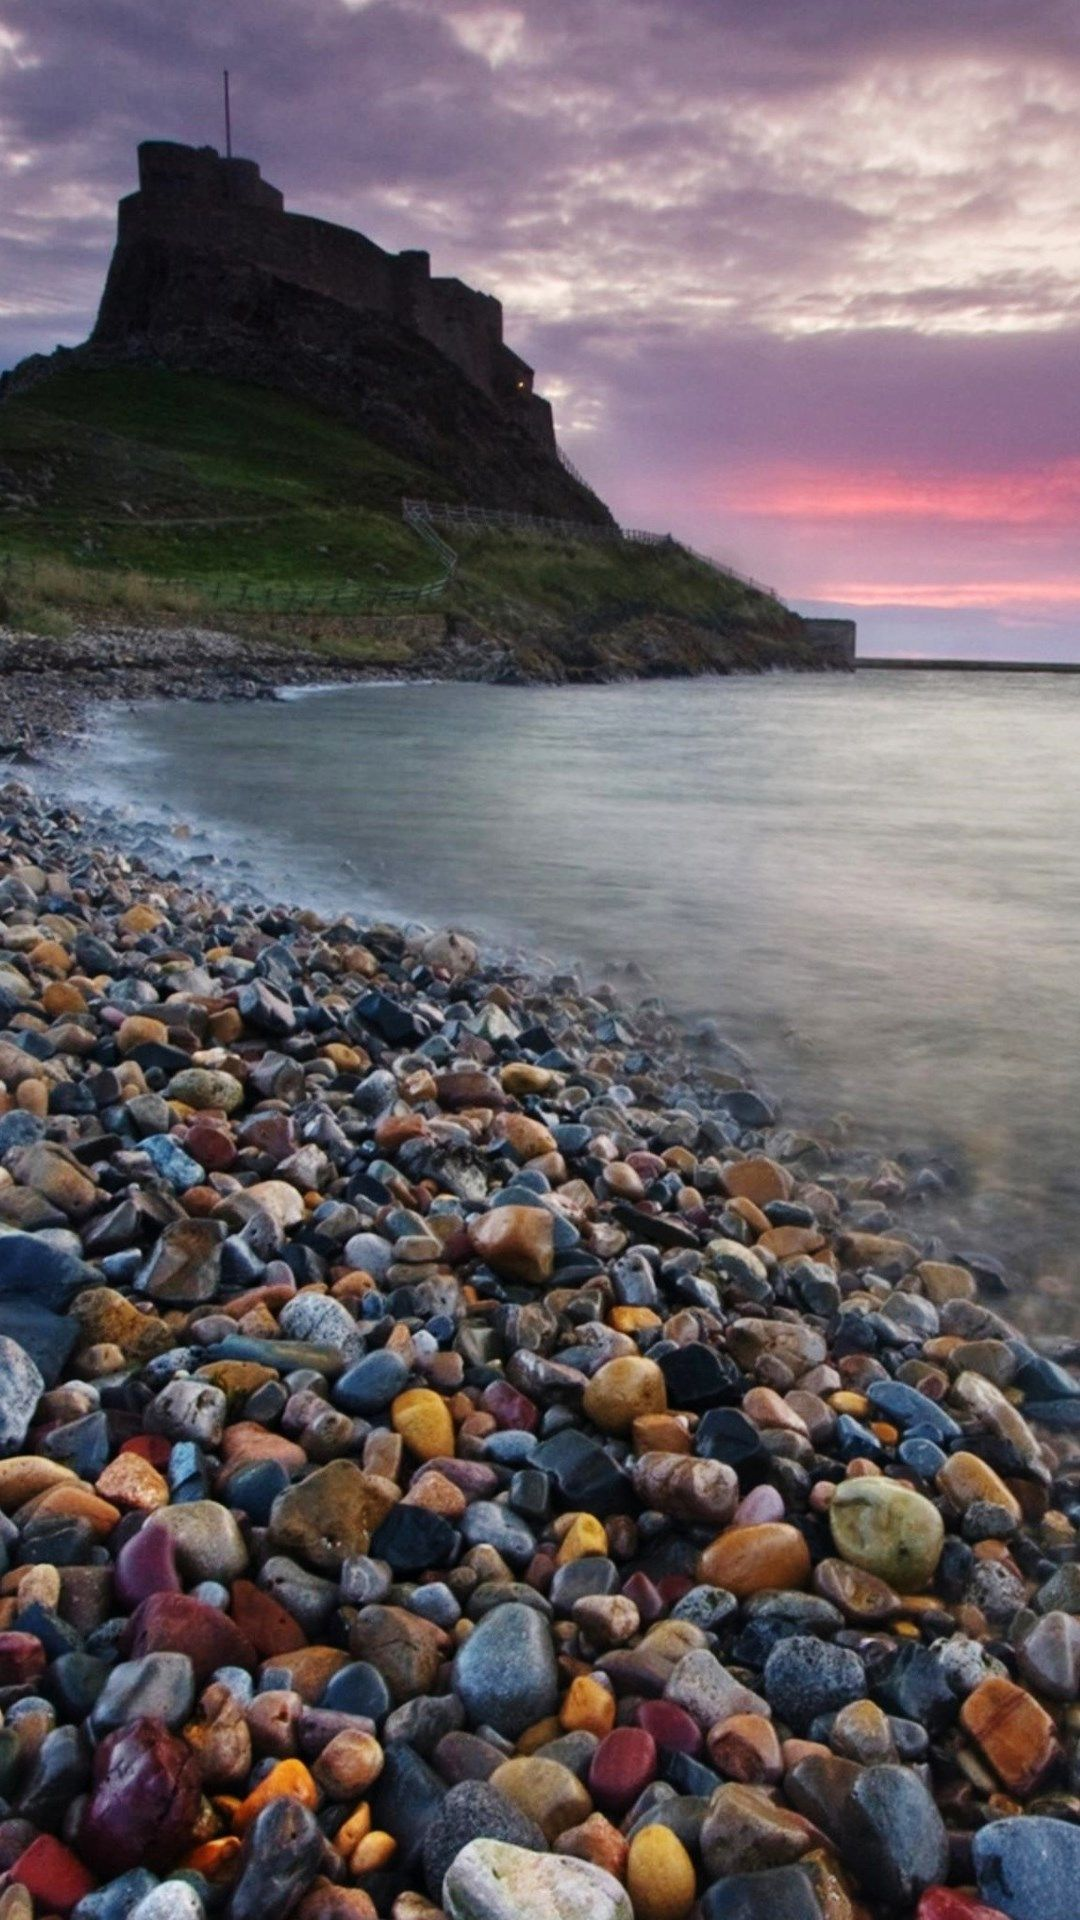 a†'a†'tap and get the free app landscapes stone beach colorful beautiful nature sunset